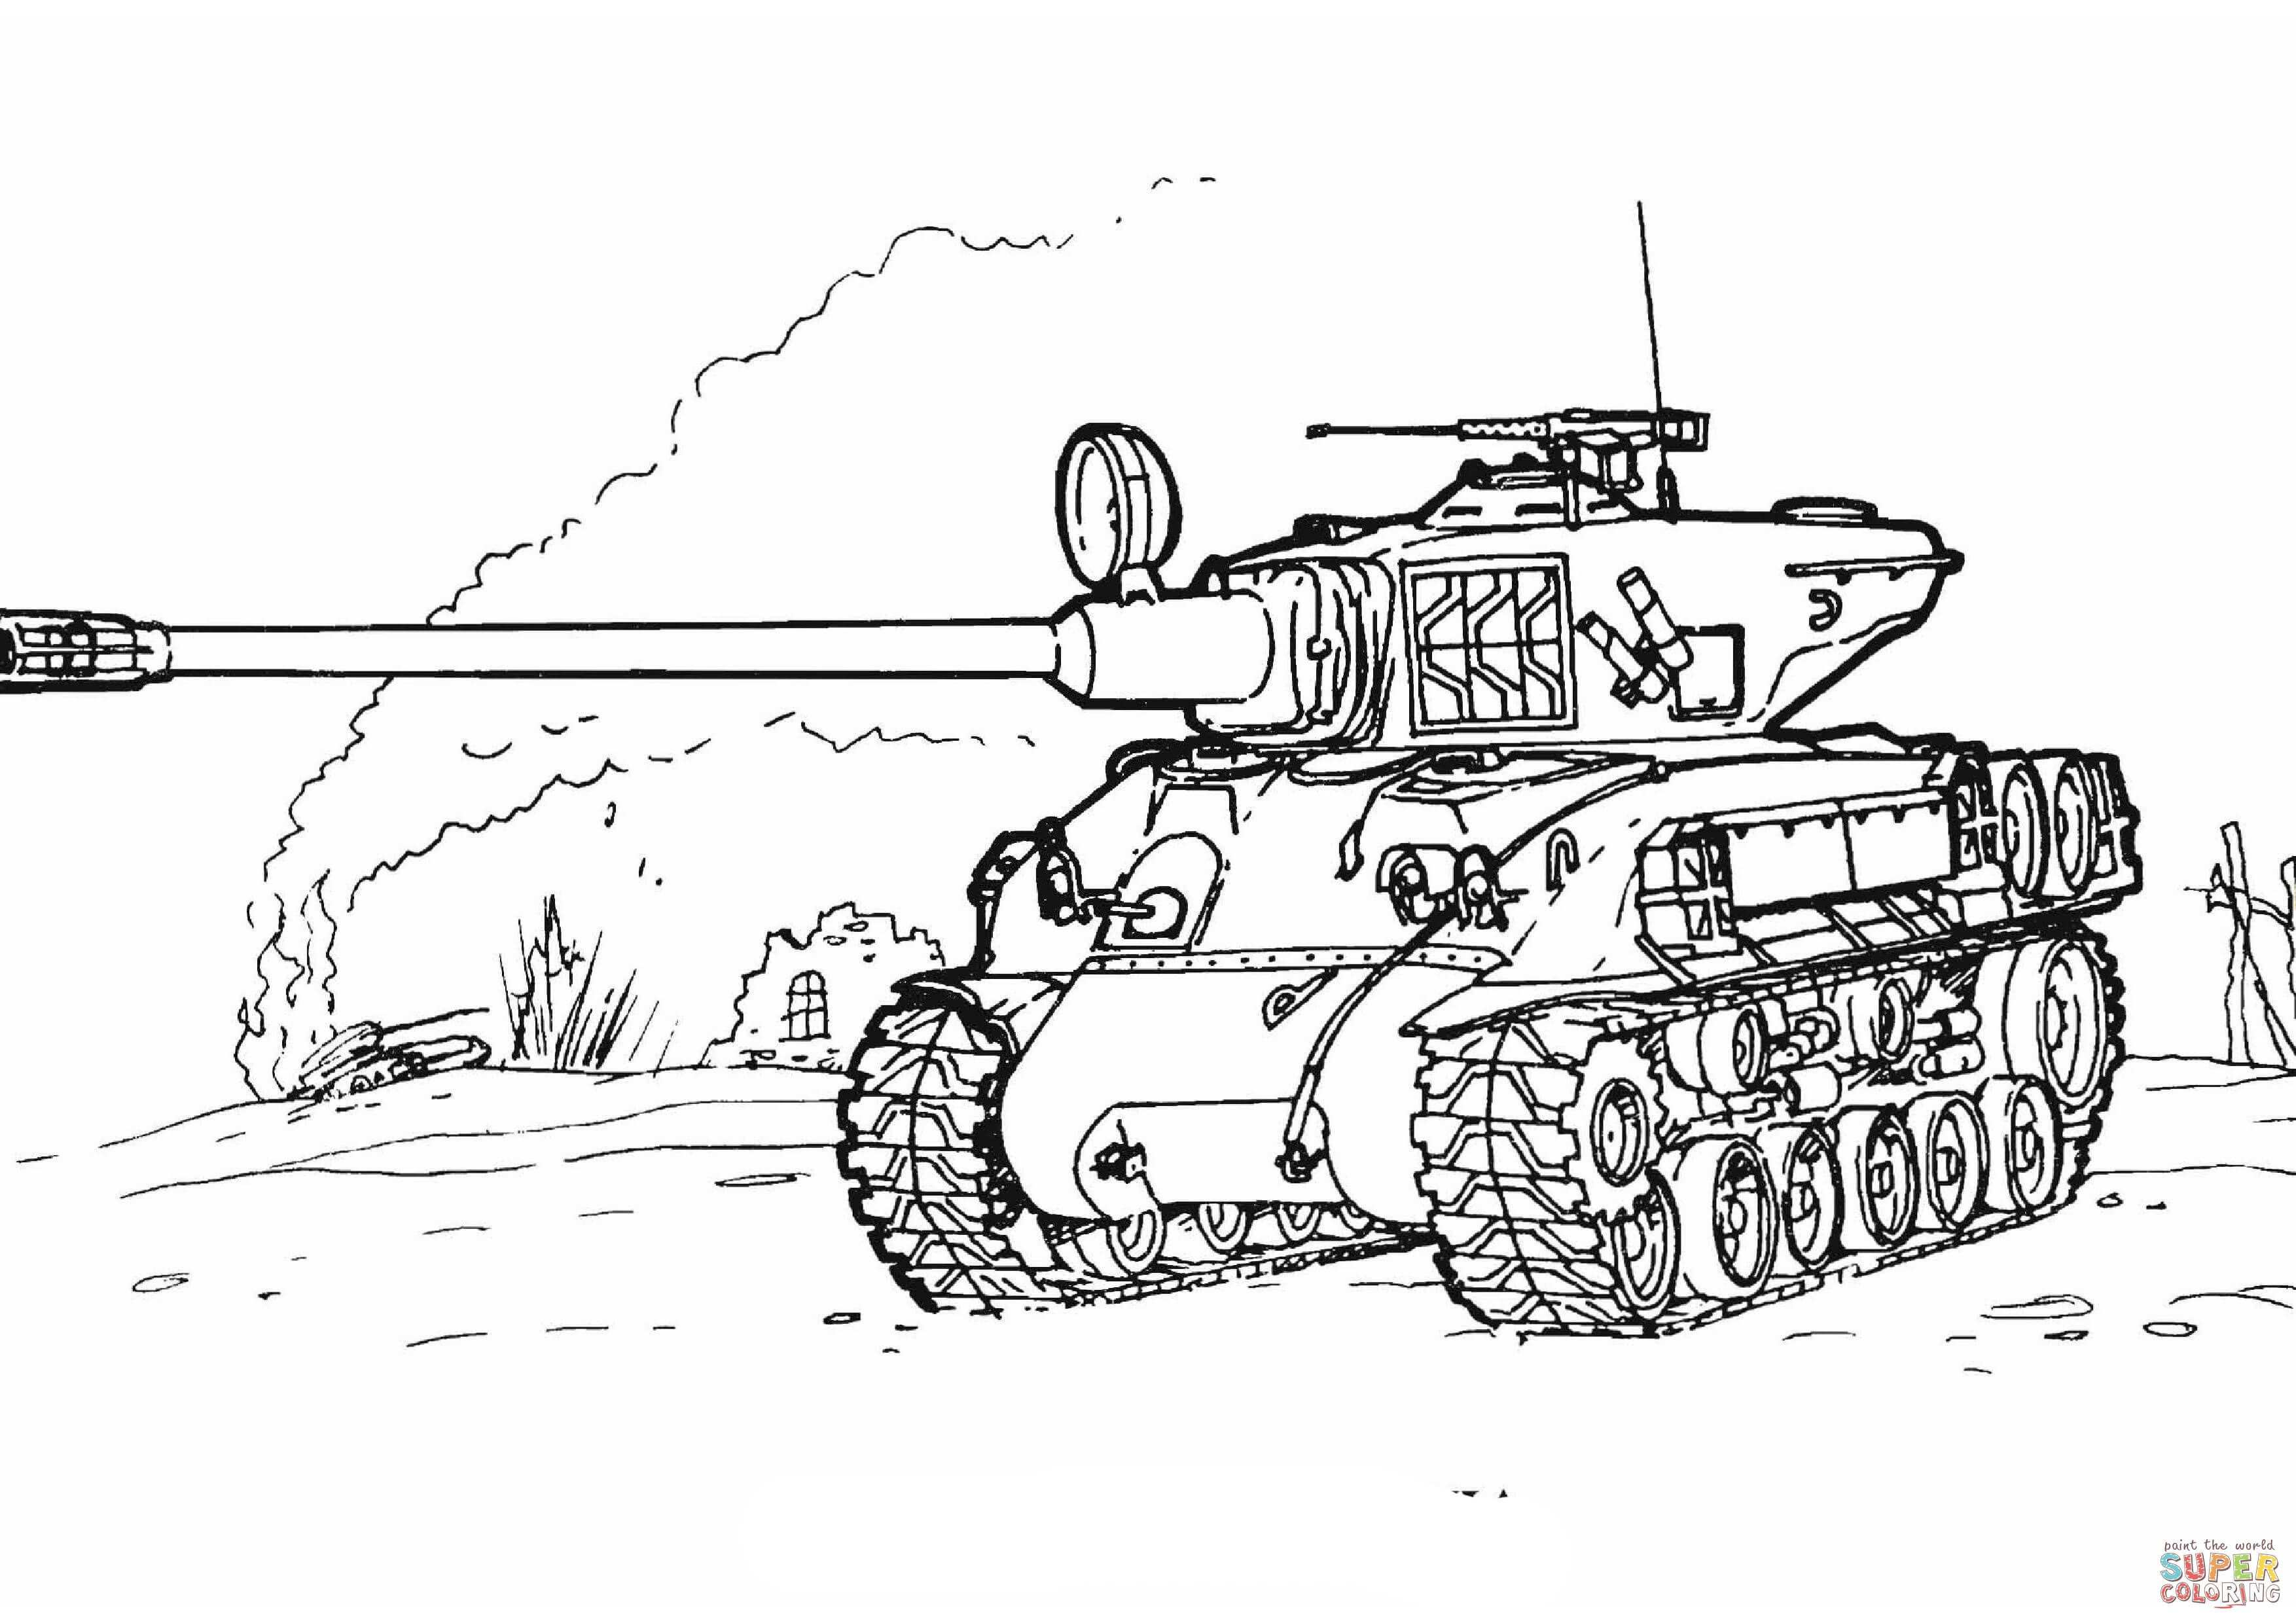 Sherman M 51 Tank Coloring Page From Tanks Category Select From